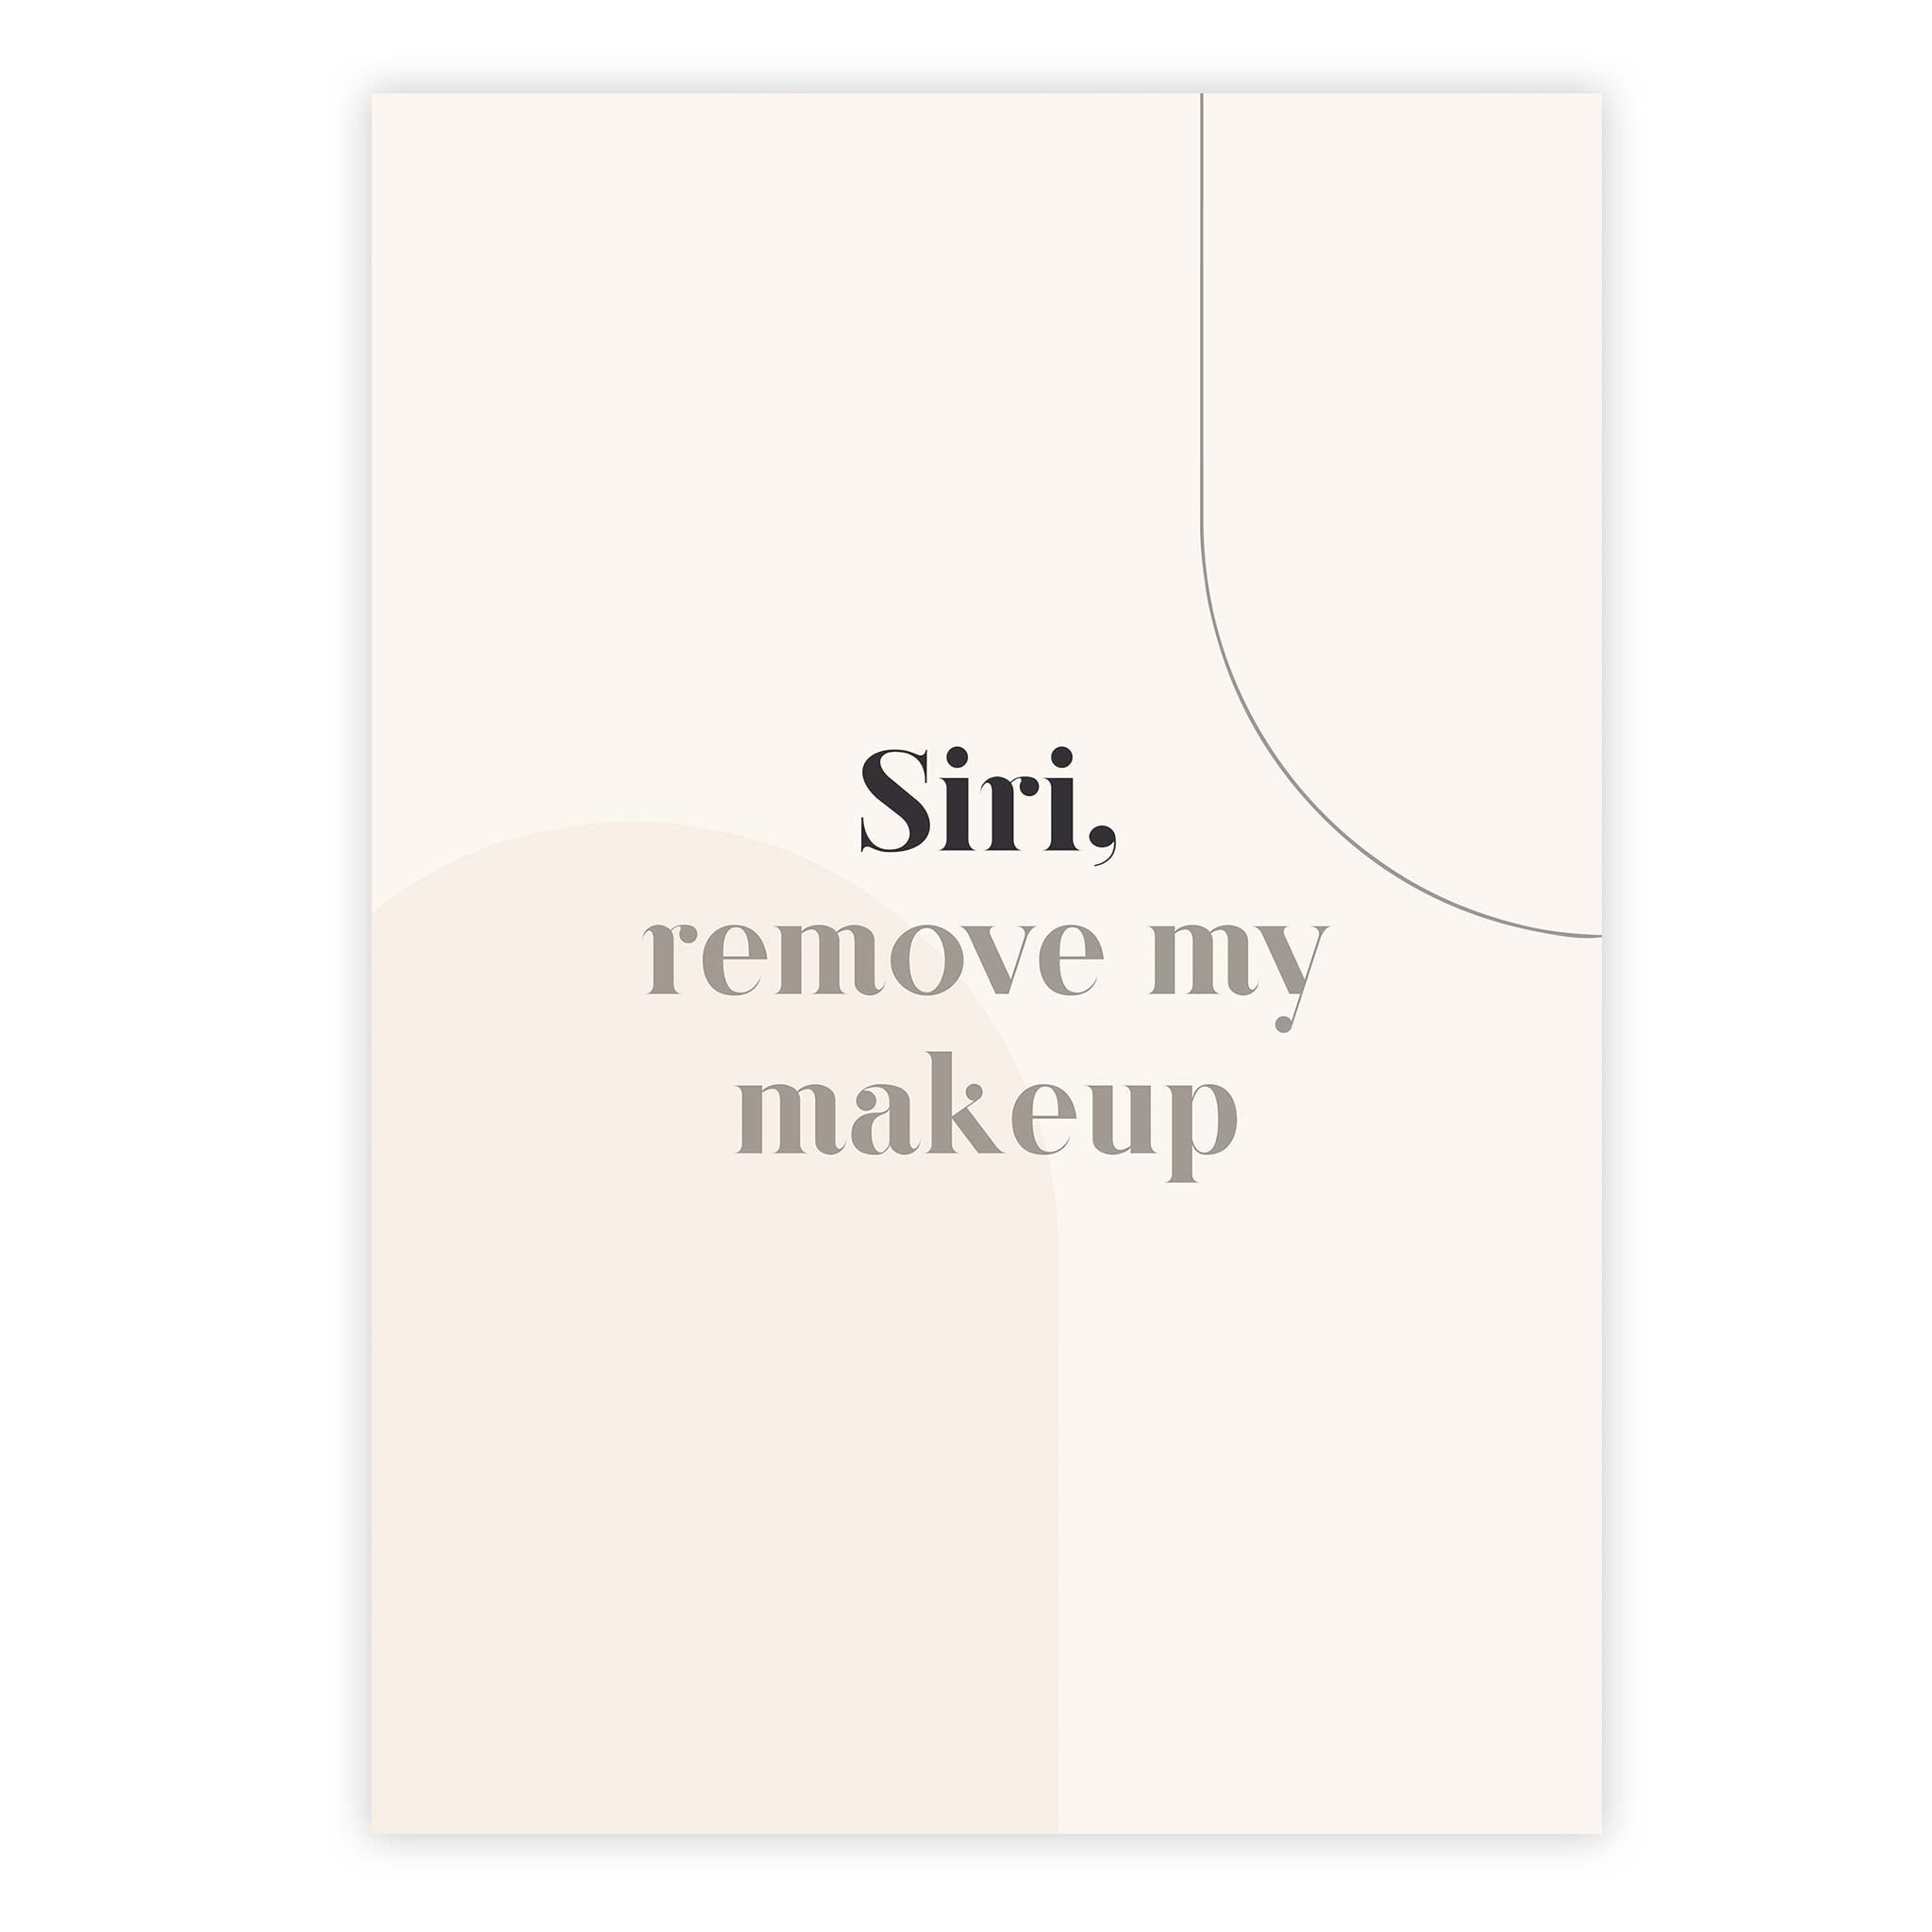 Siri remove my makeup